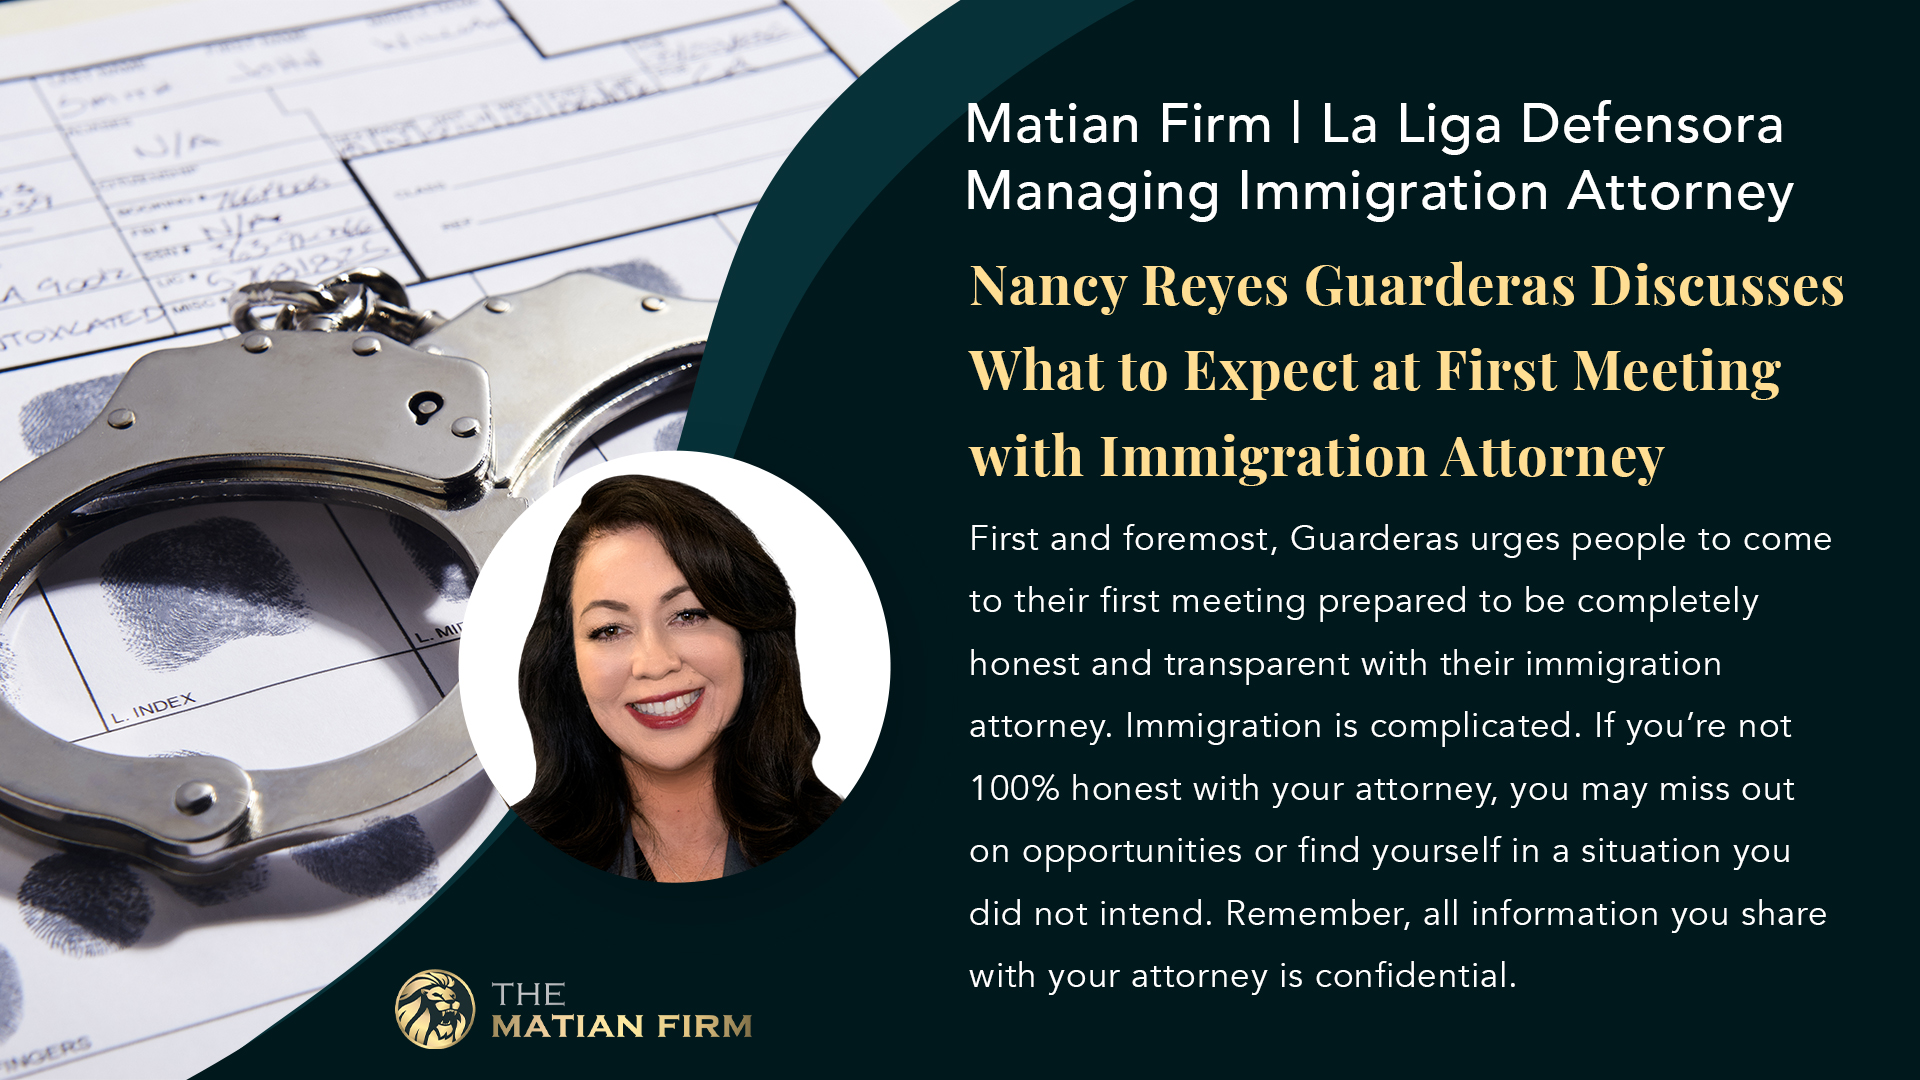 Matian Firm | La Liga Defensora Managing Immigration Attorney Nancy Reyes Guarderas Discusses Ways Immigrants Can Prevent a Criminal Past from Affecting their Immigration Status